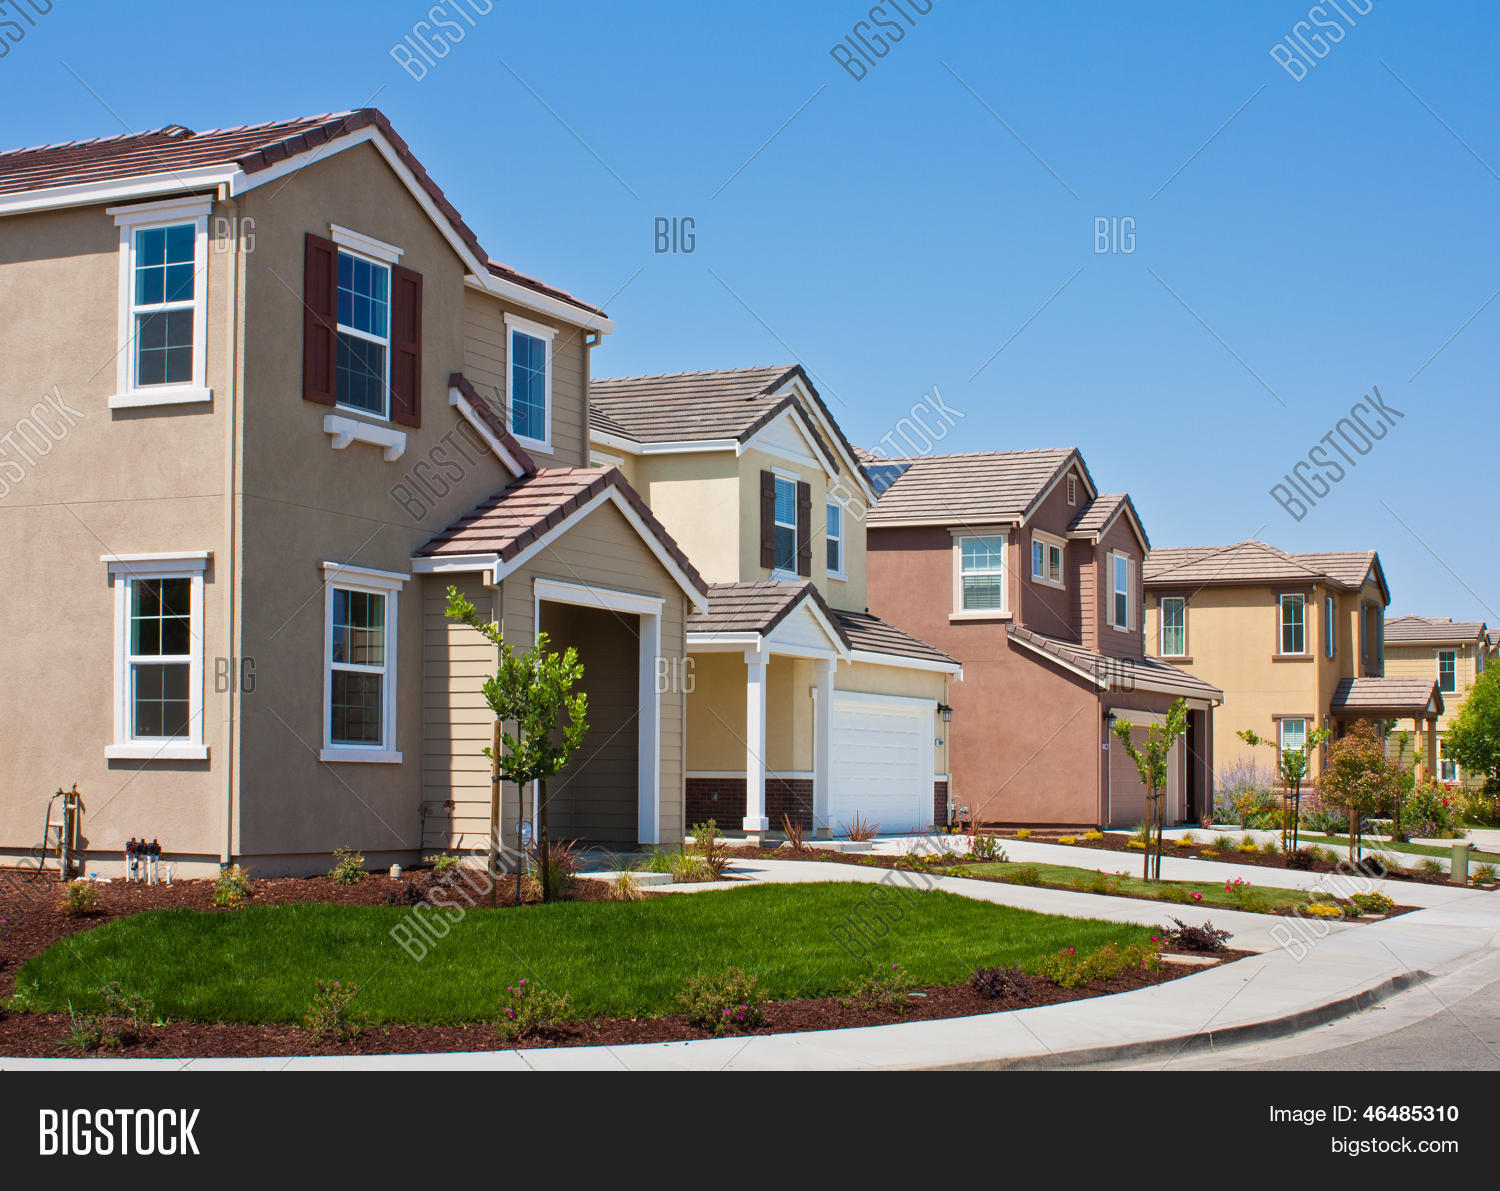 New Tract Homes Stock Photo Stock Images Bigstock